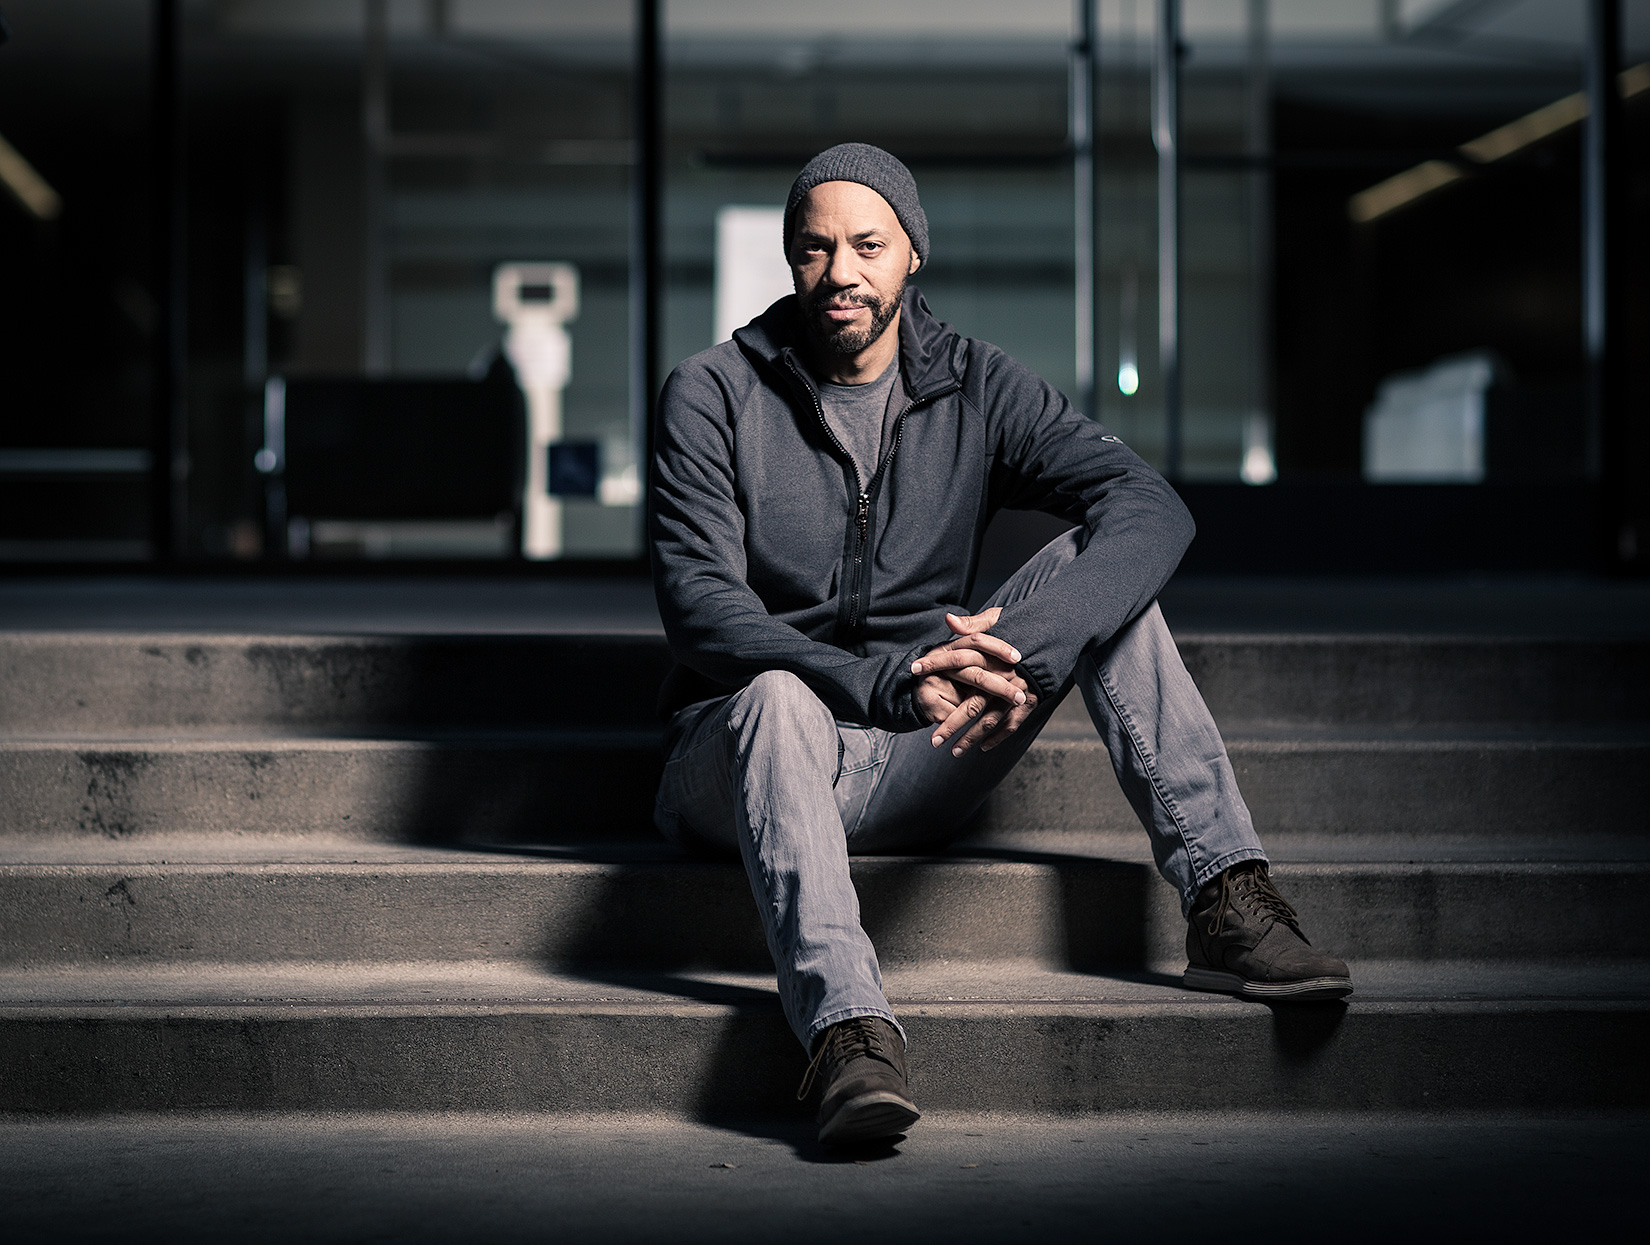 Director Portrait of John Ridley . ABC Studios / 12 Years a Slave